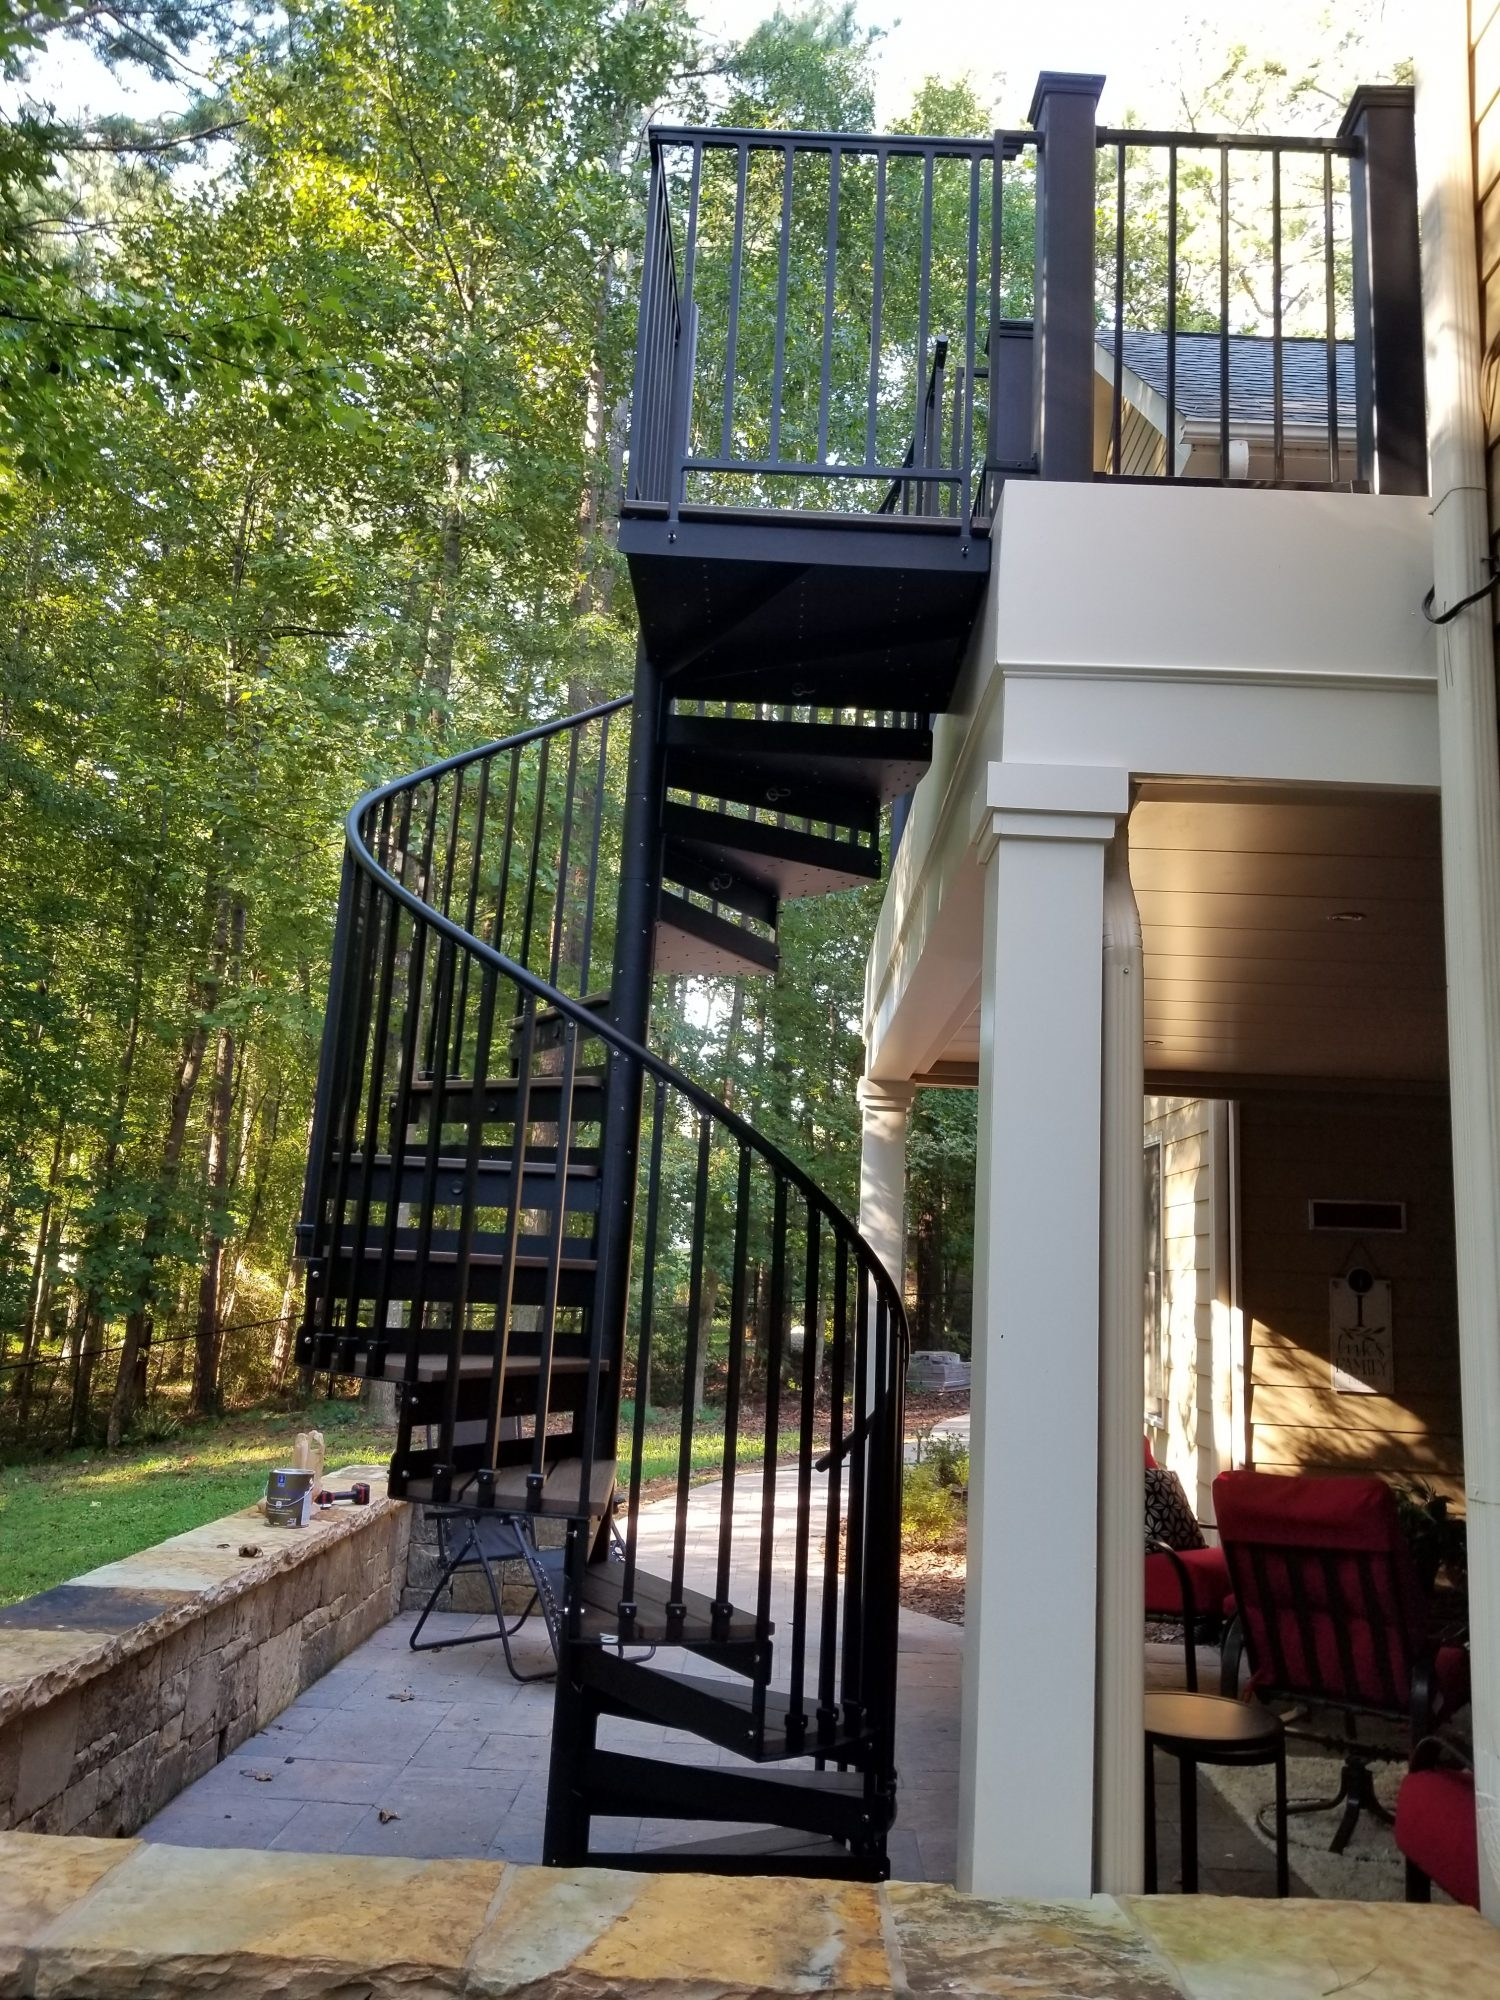 Discover The Ultimate Staircase Alternative Trex Spiral Stairs   Spiral Stairs Off Deck   Railing   Wood Deck   Metal   Stair Case   Stairway